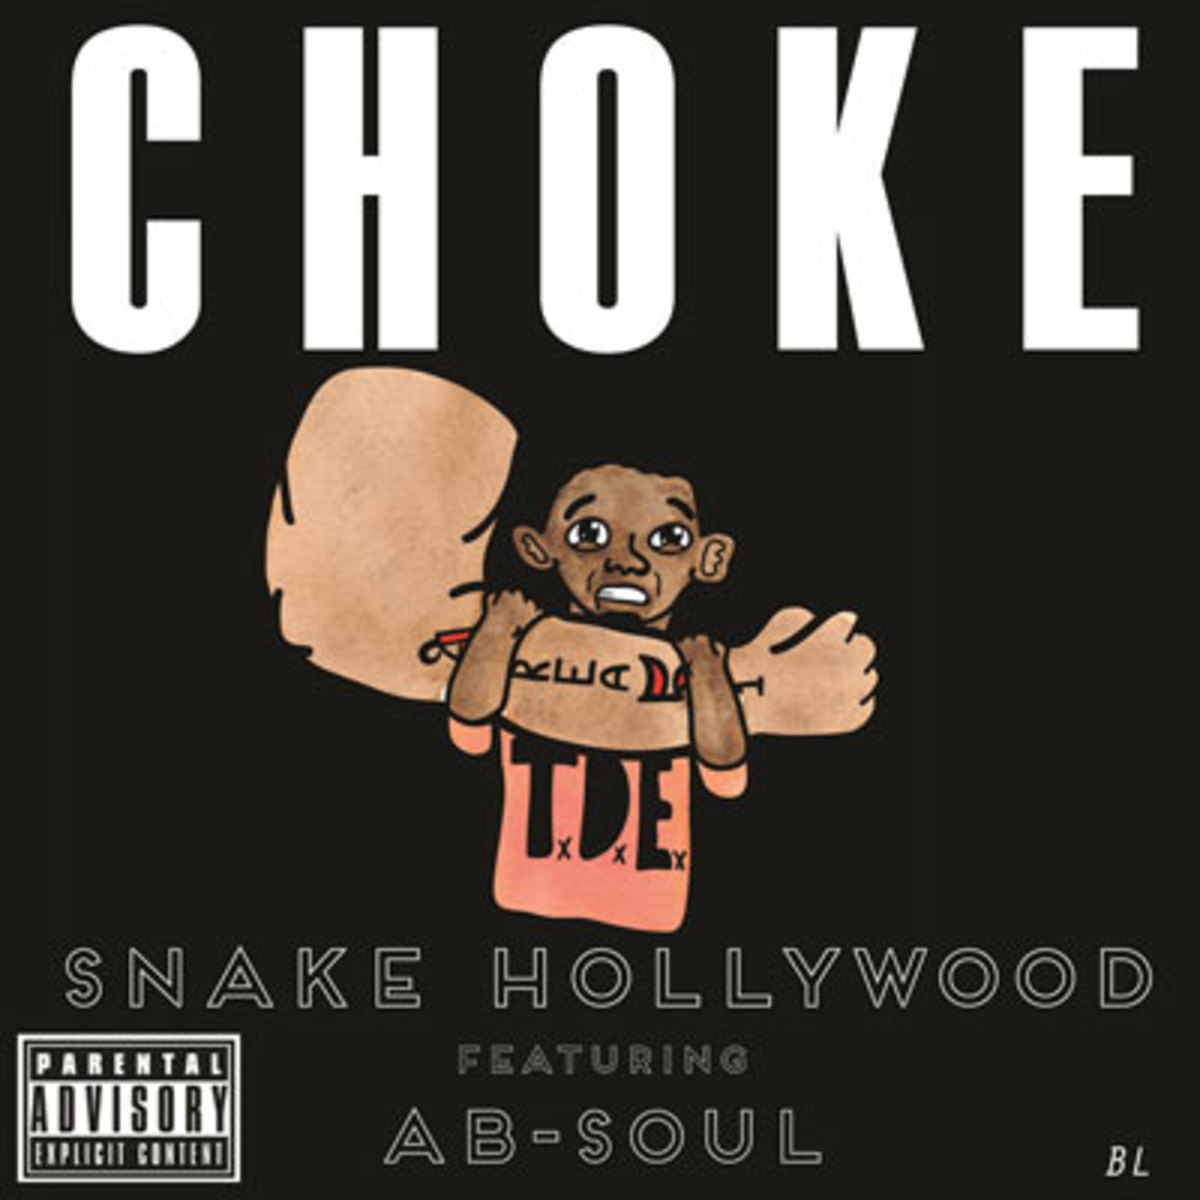 snakehollywood-choke.jpg